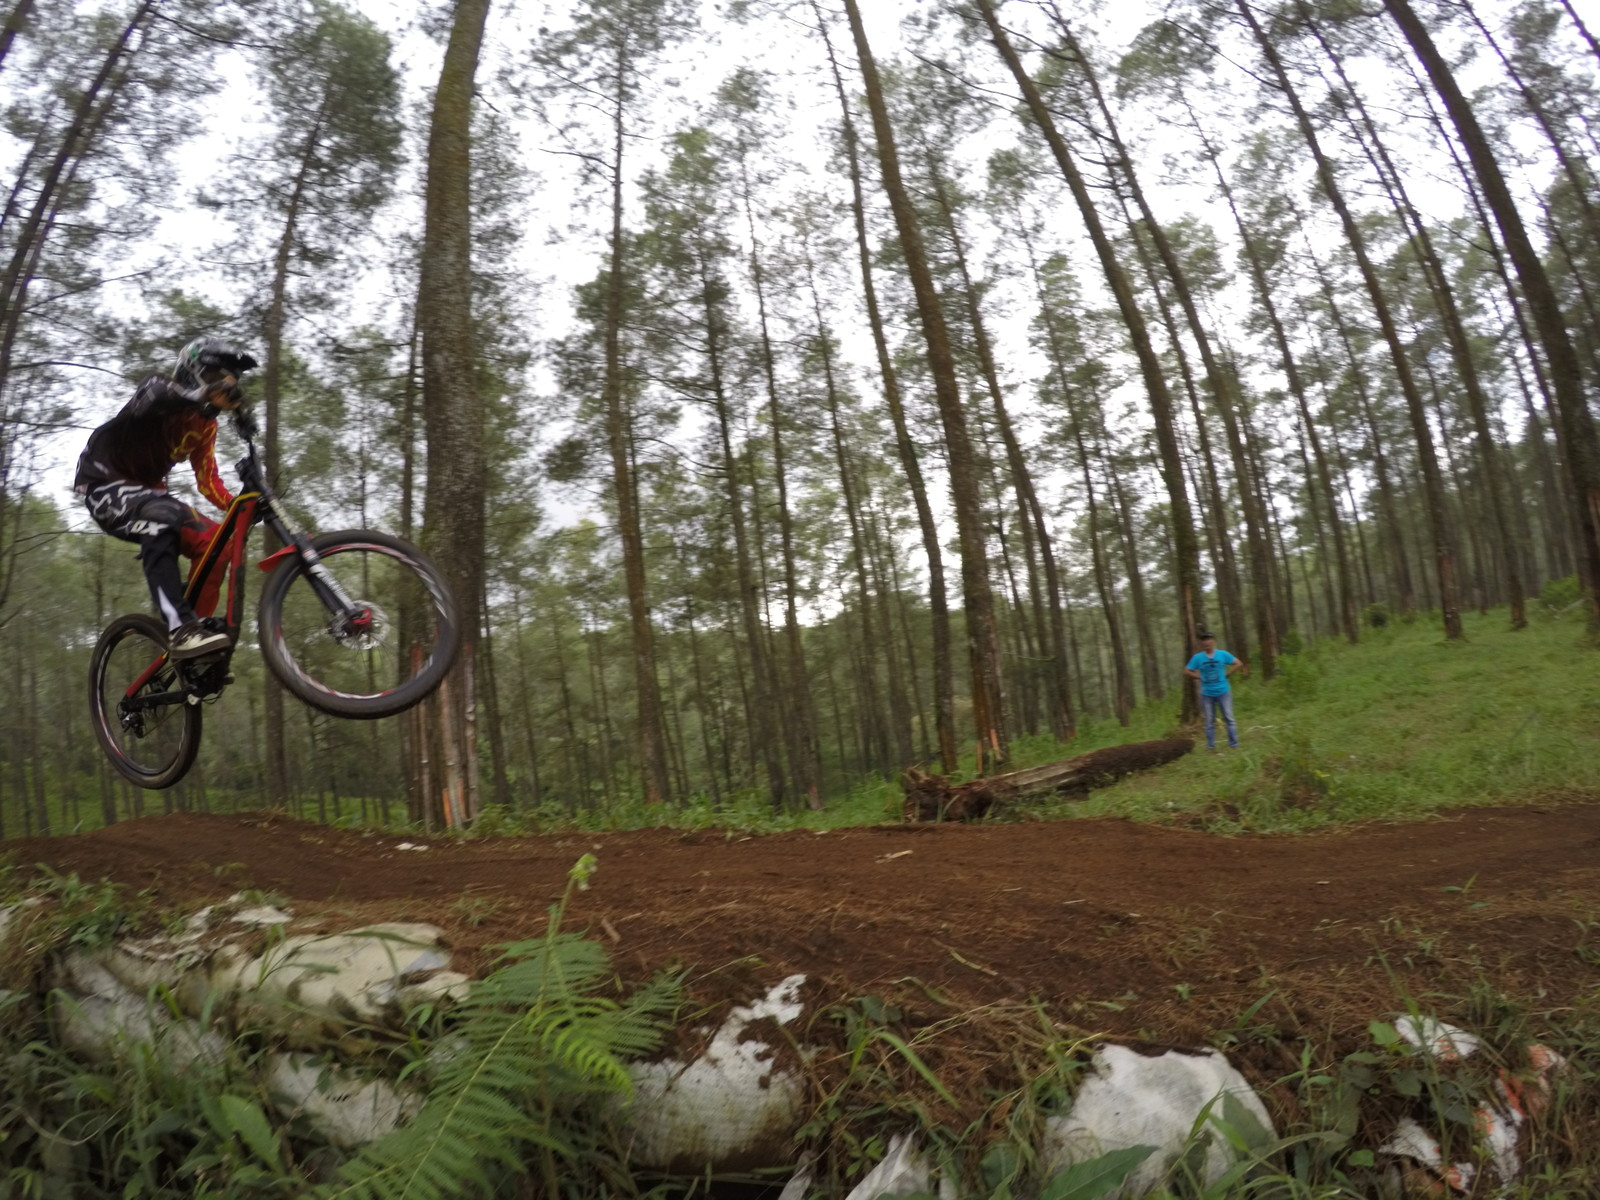 50 Years Old and still ripping - anggahp - Mountain Biking Pictures - Vital MTB